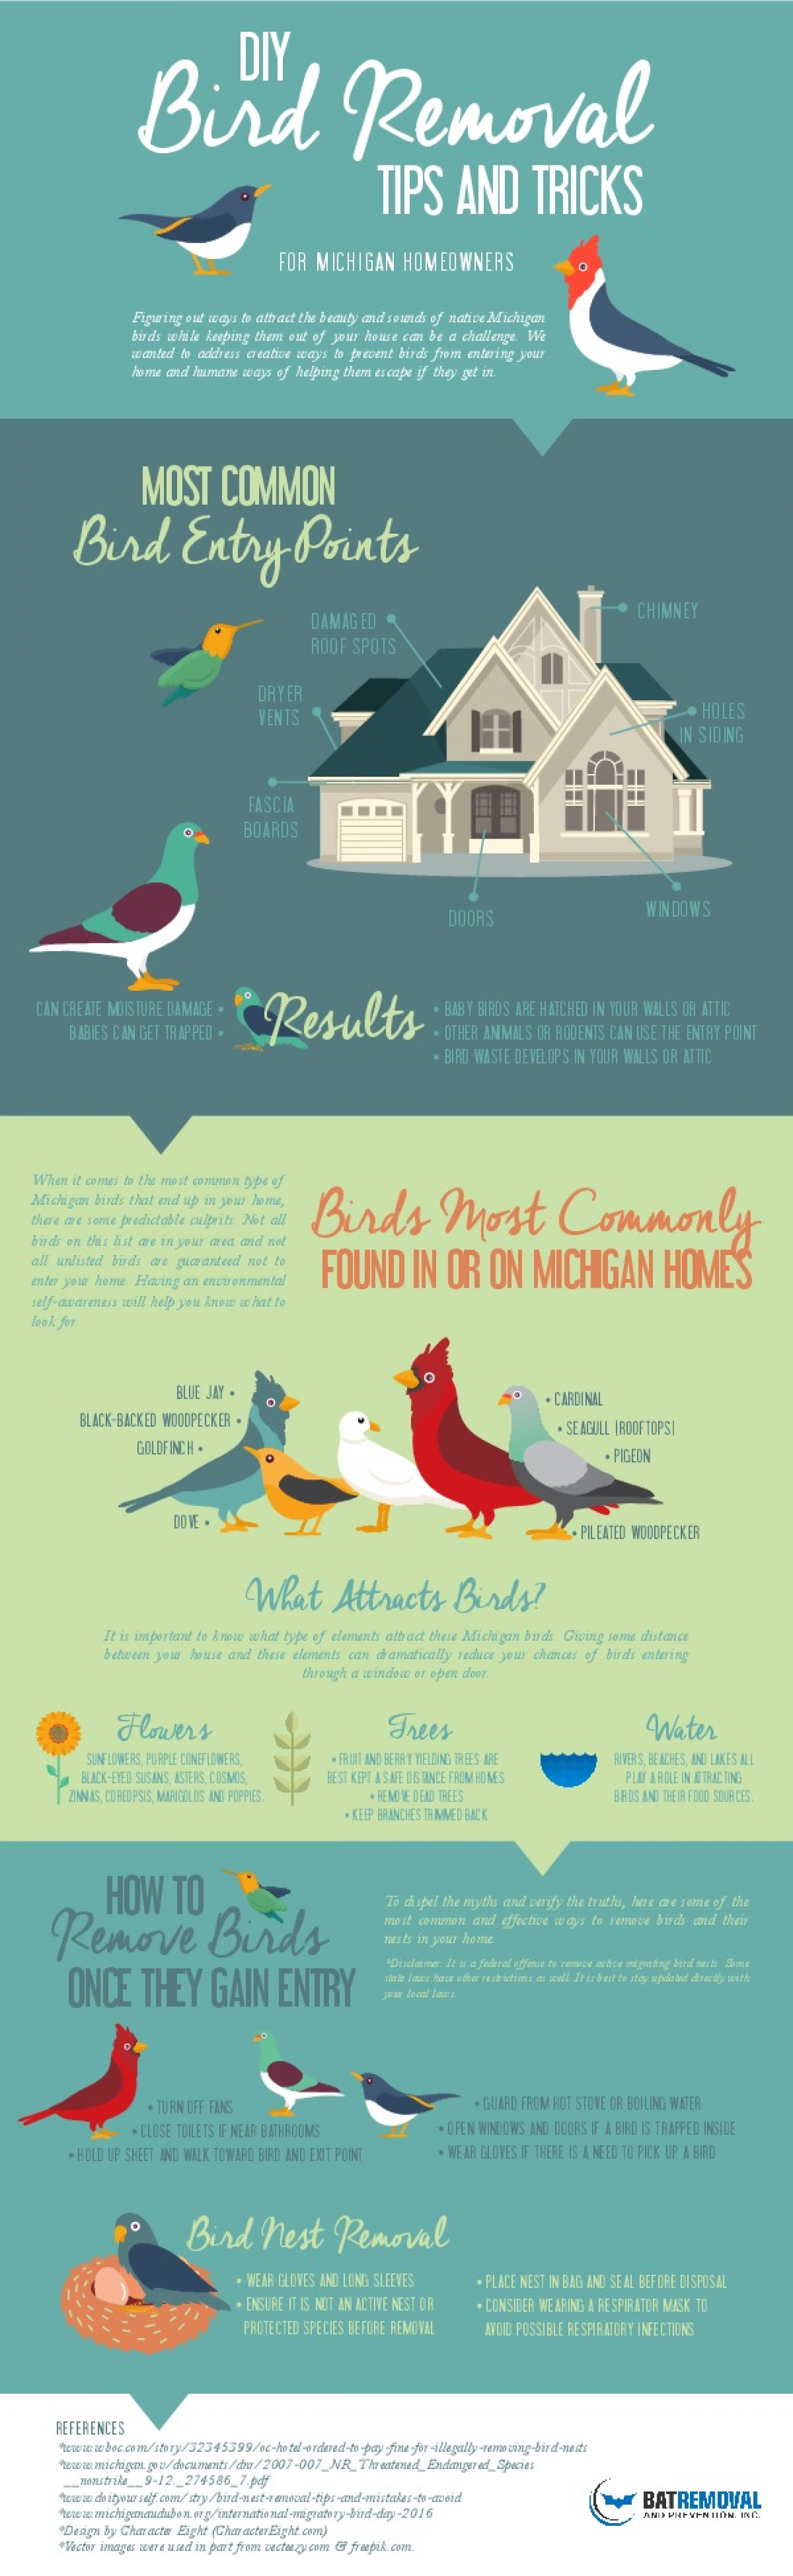 DIY Bird Removal Tips & Tricks Infographic